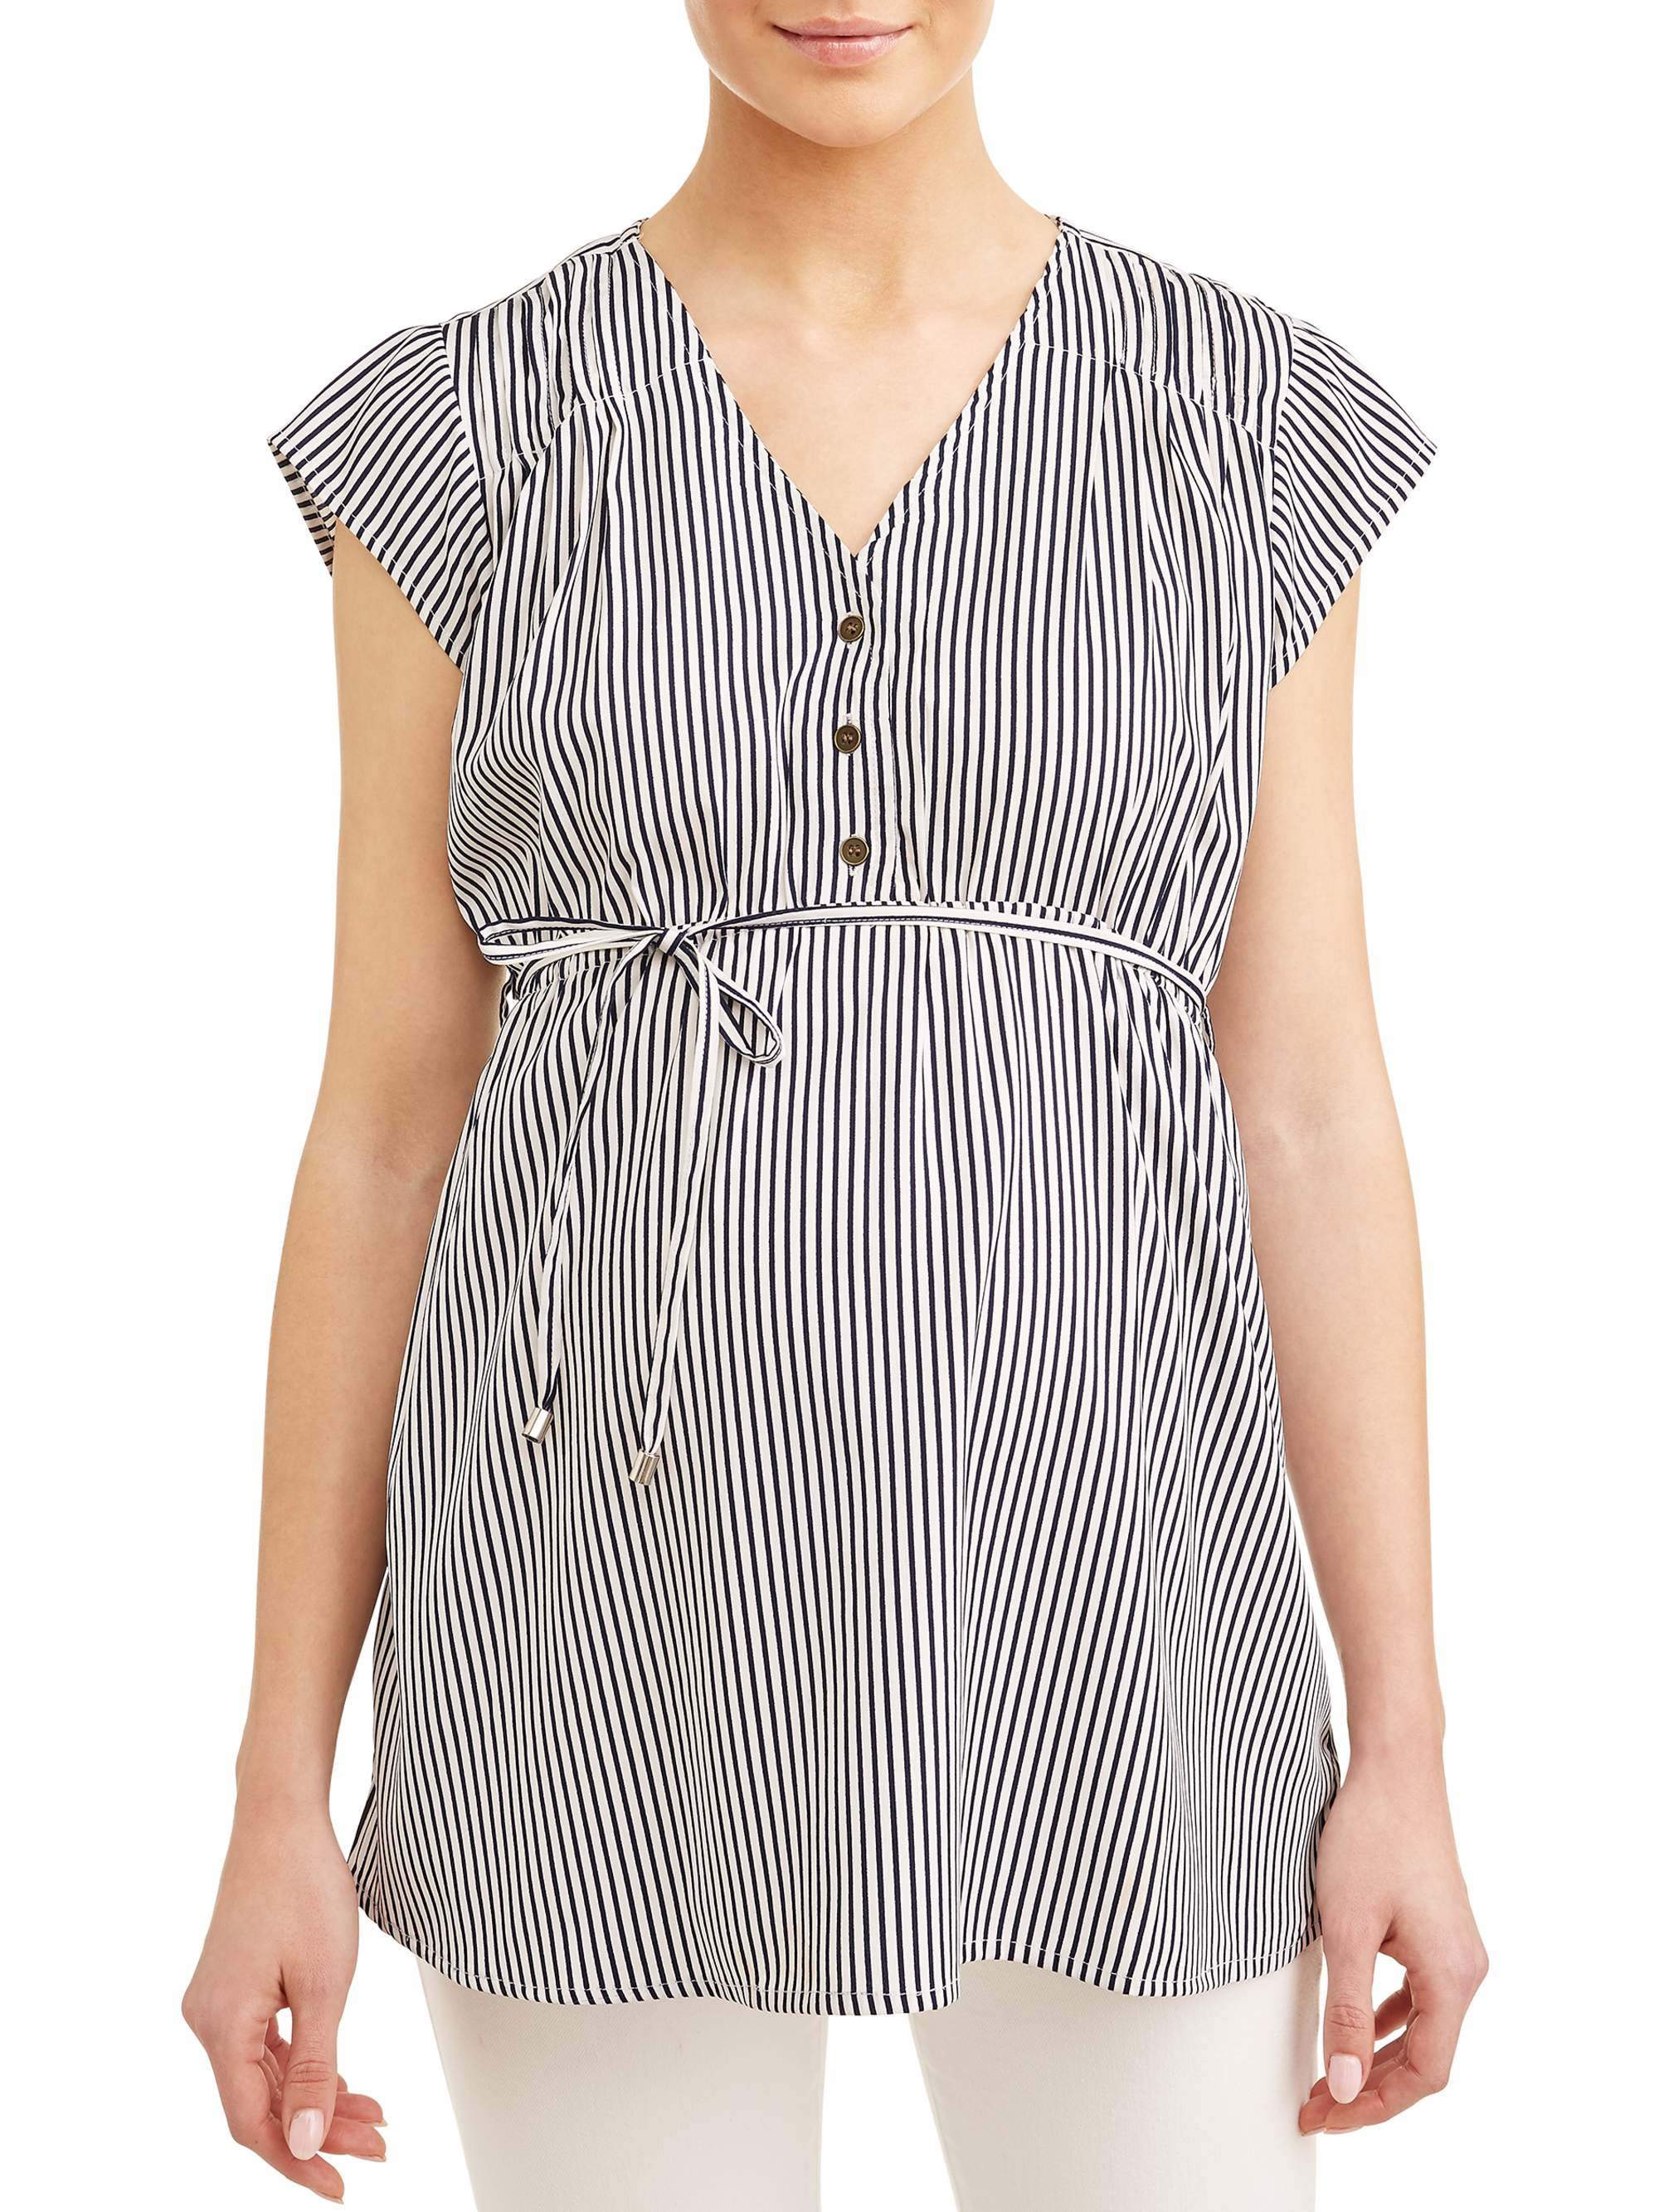 Maternity Stripe Button Front Top - Available in Plus Sizes